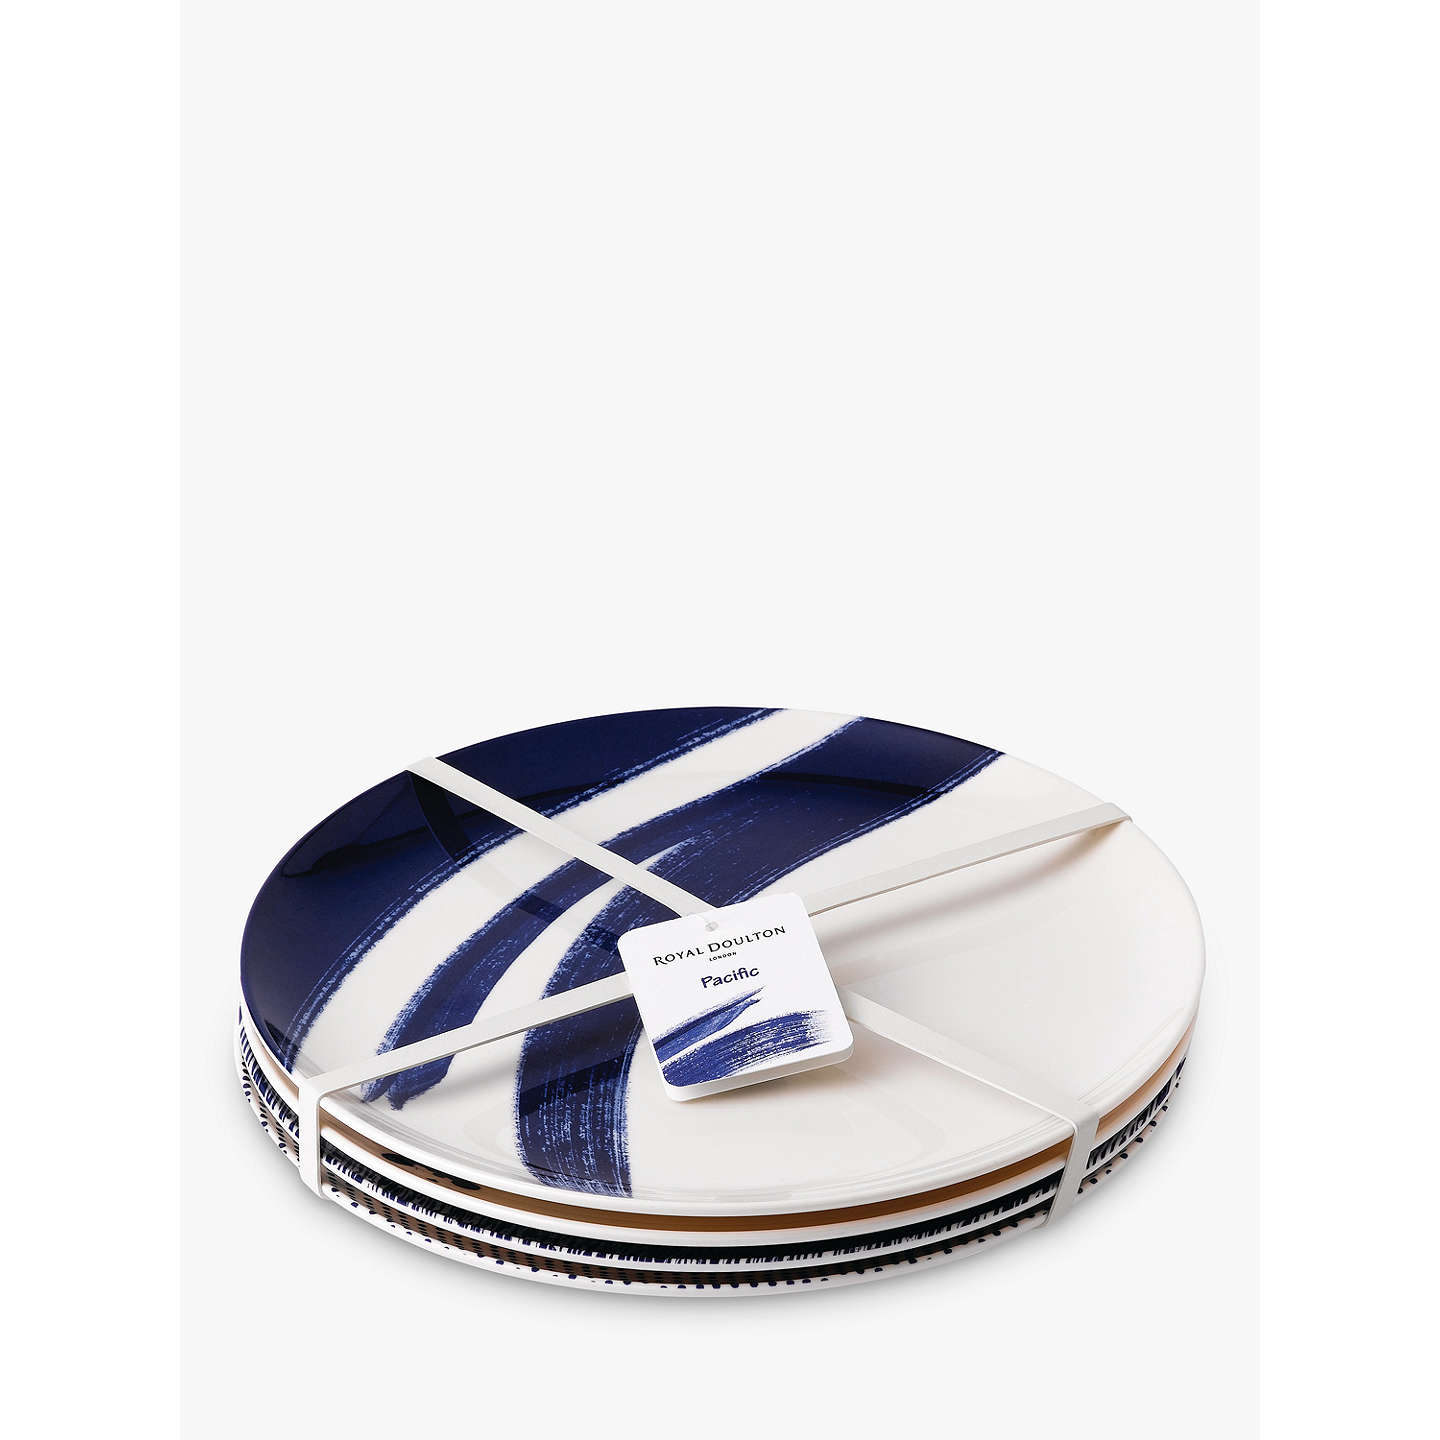 BuyRoyal Doulton Pacific Melamine Dinner Plate, Set of 4, Blue Online at johnlewis.com